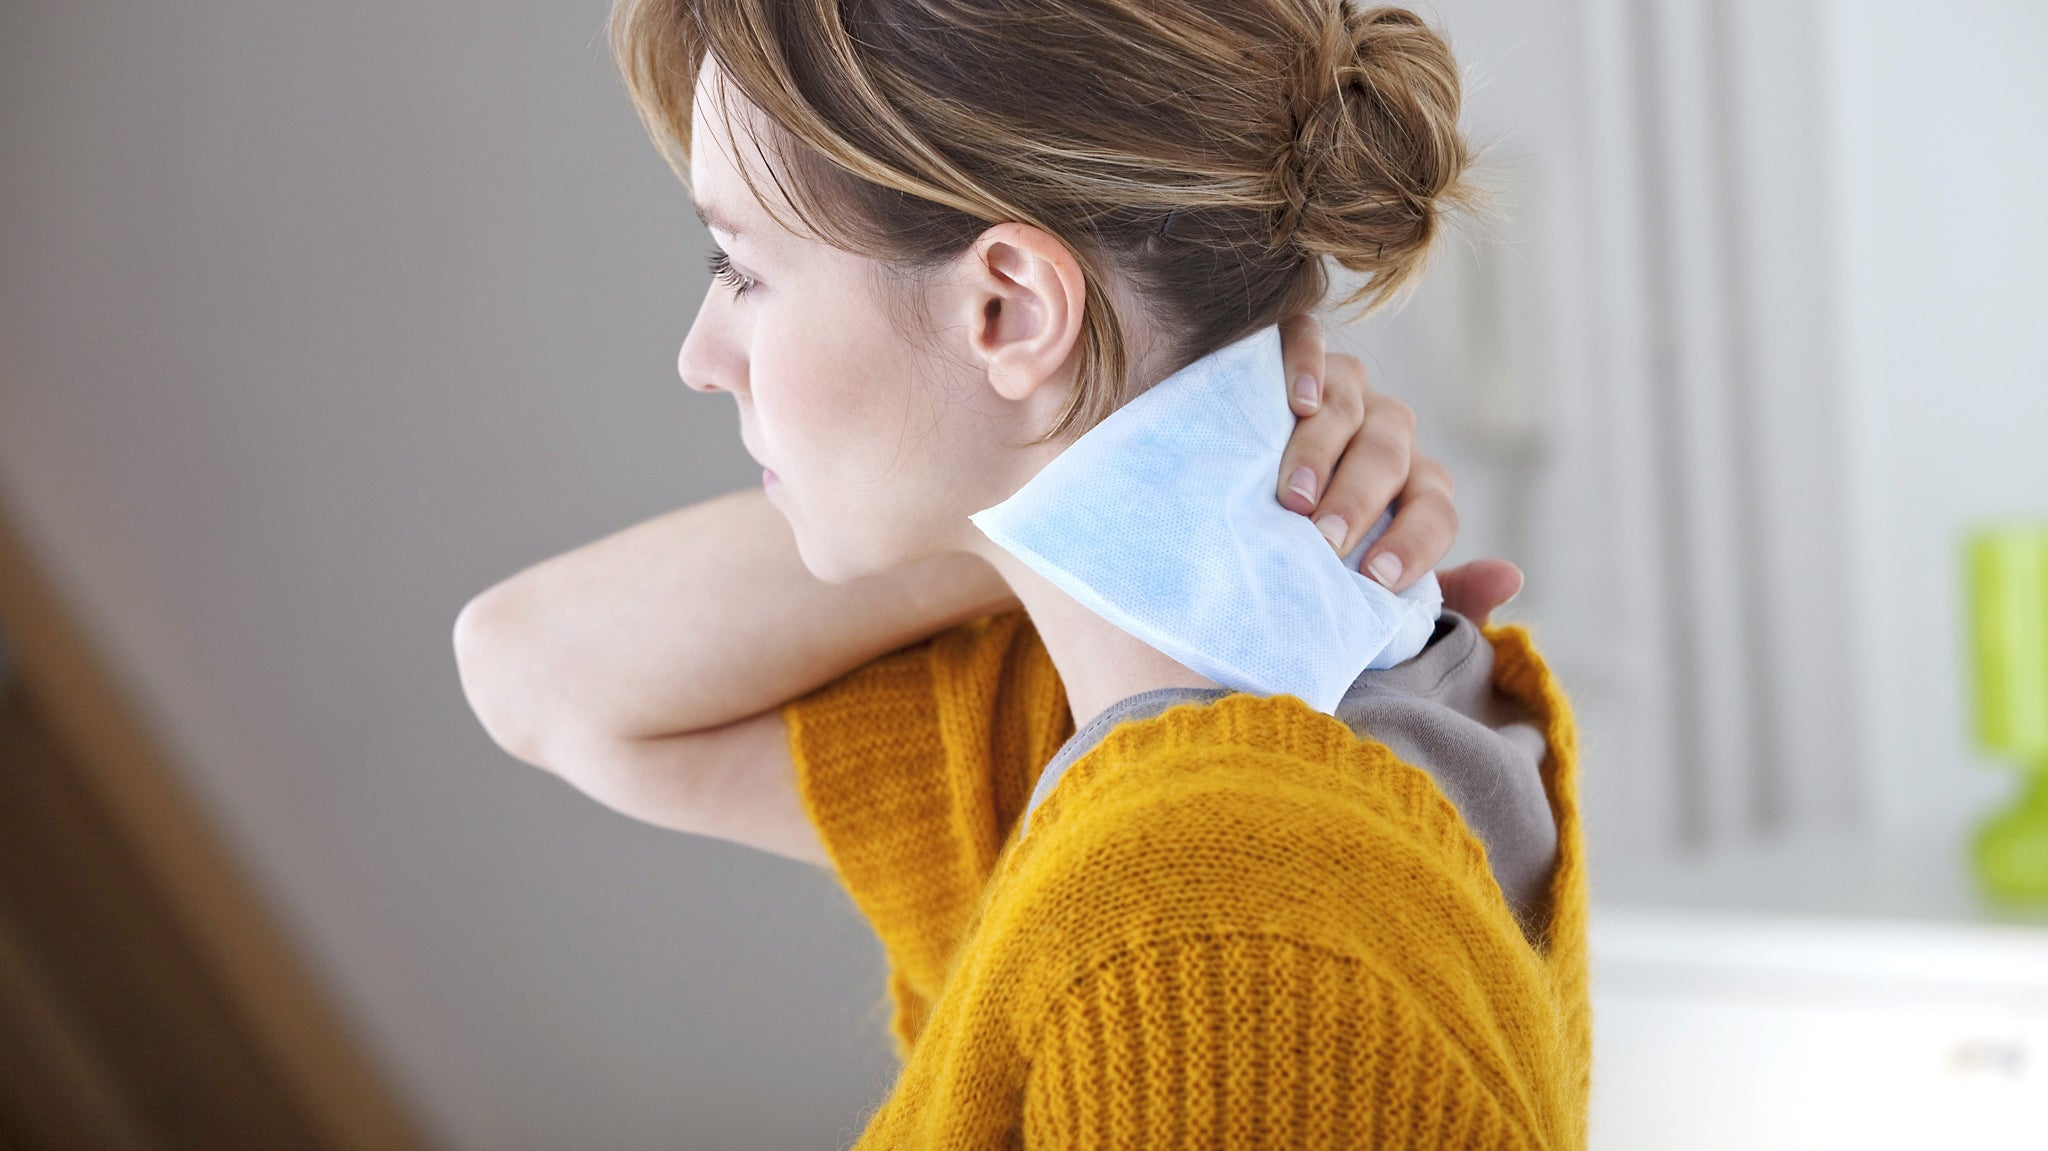 Muscle Knot in Neck Won't Go Away? Try These Home Remedies